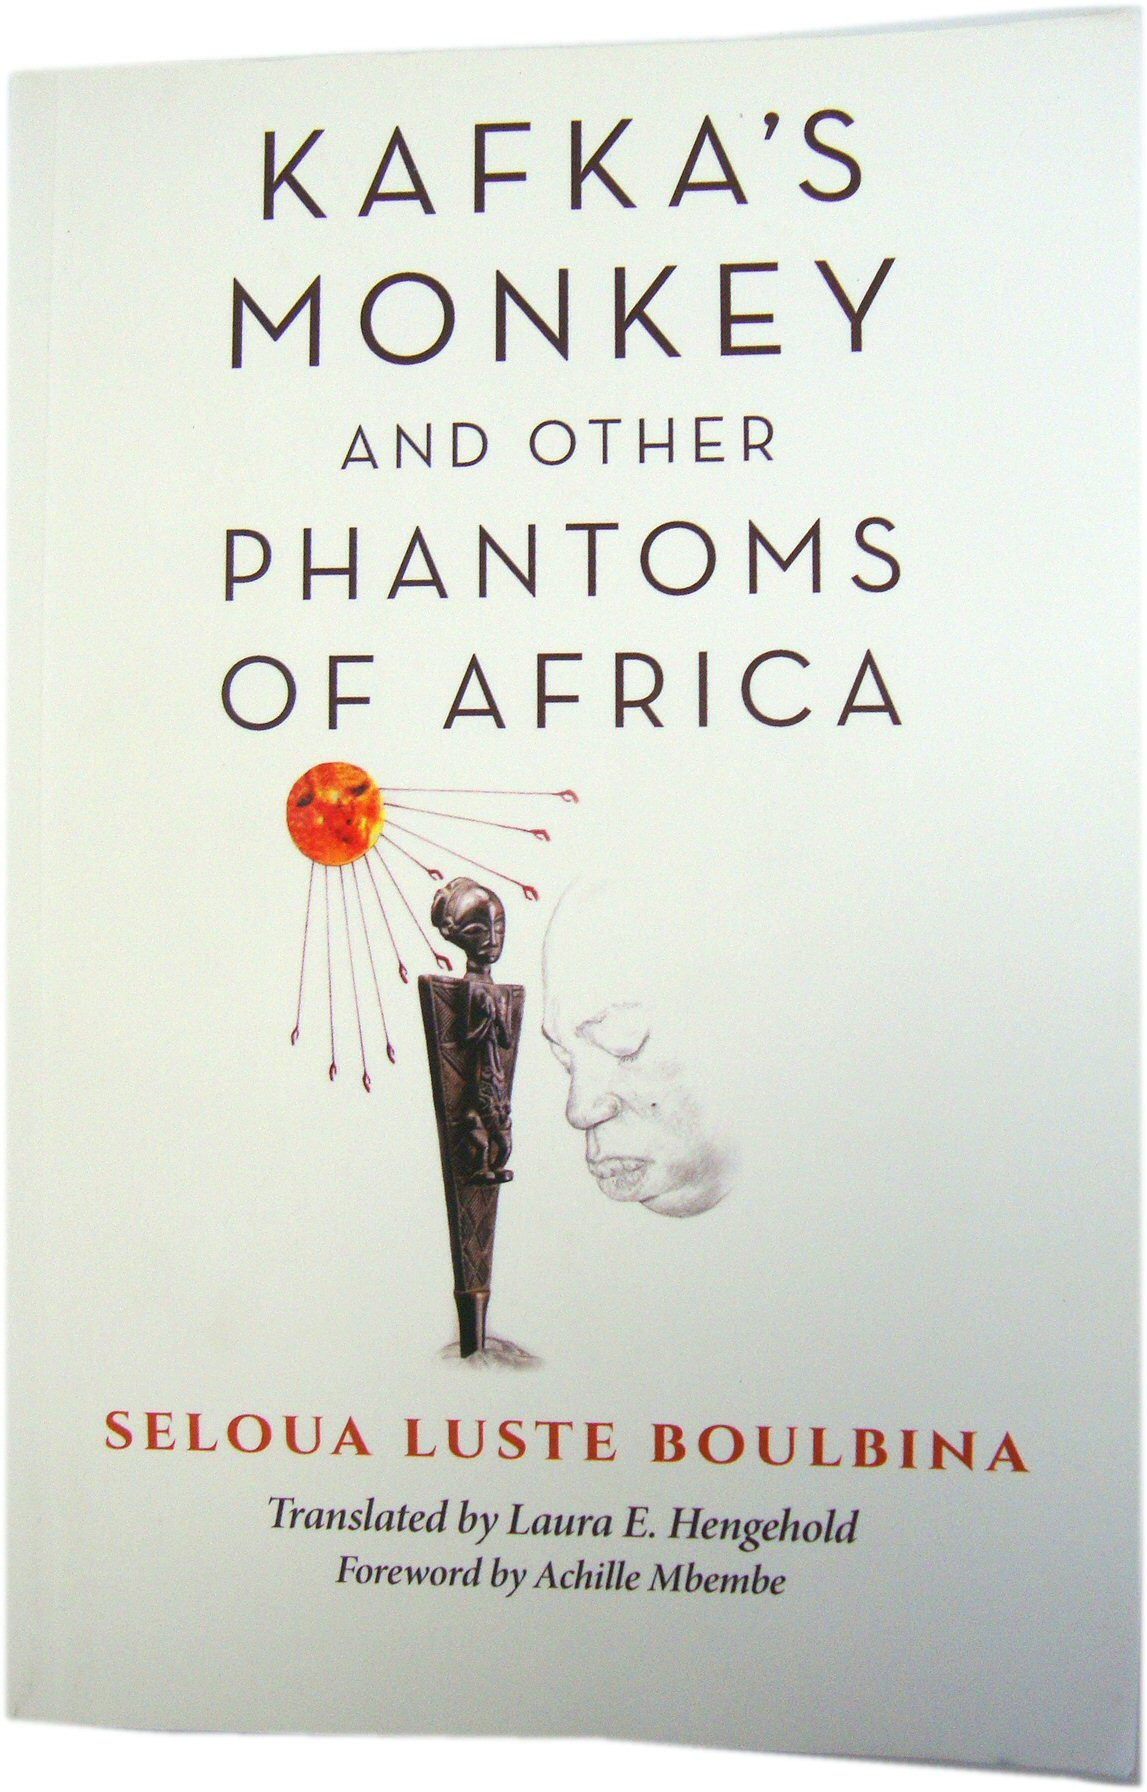 Image for Kafka's Monkey and other Phantoms of Africa